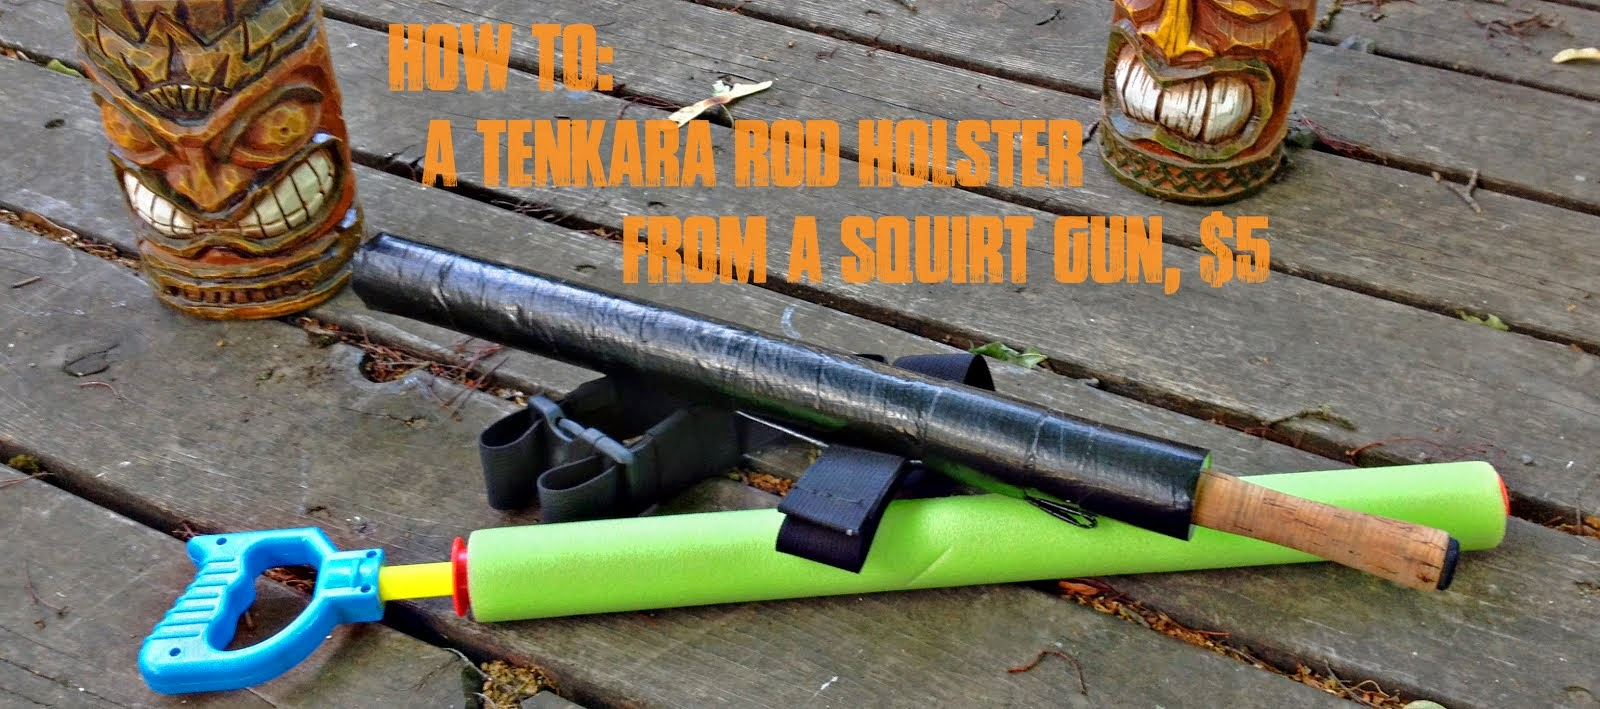 How to: Tenkara rod case from a squirt gun